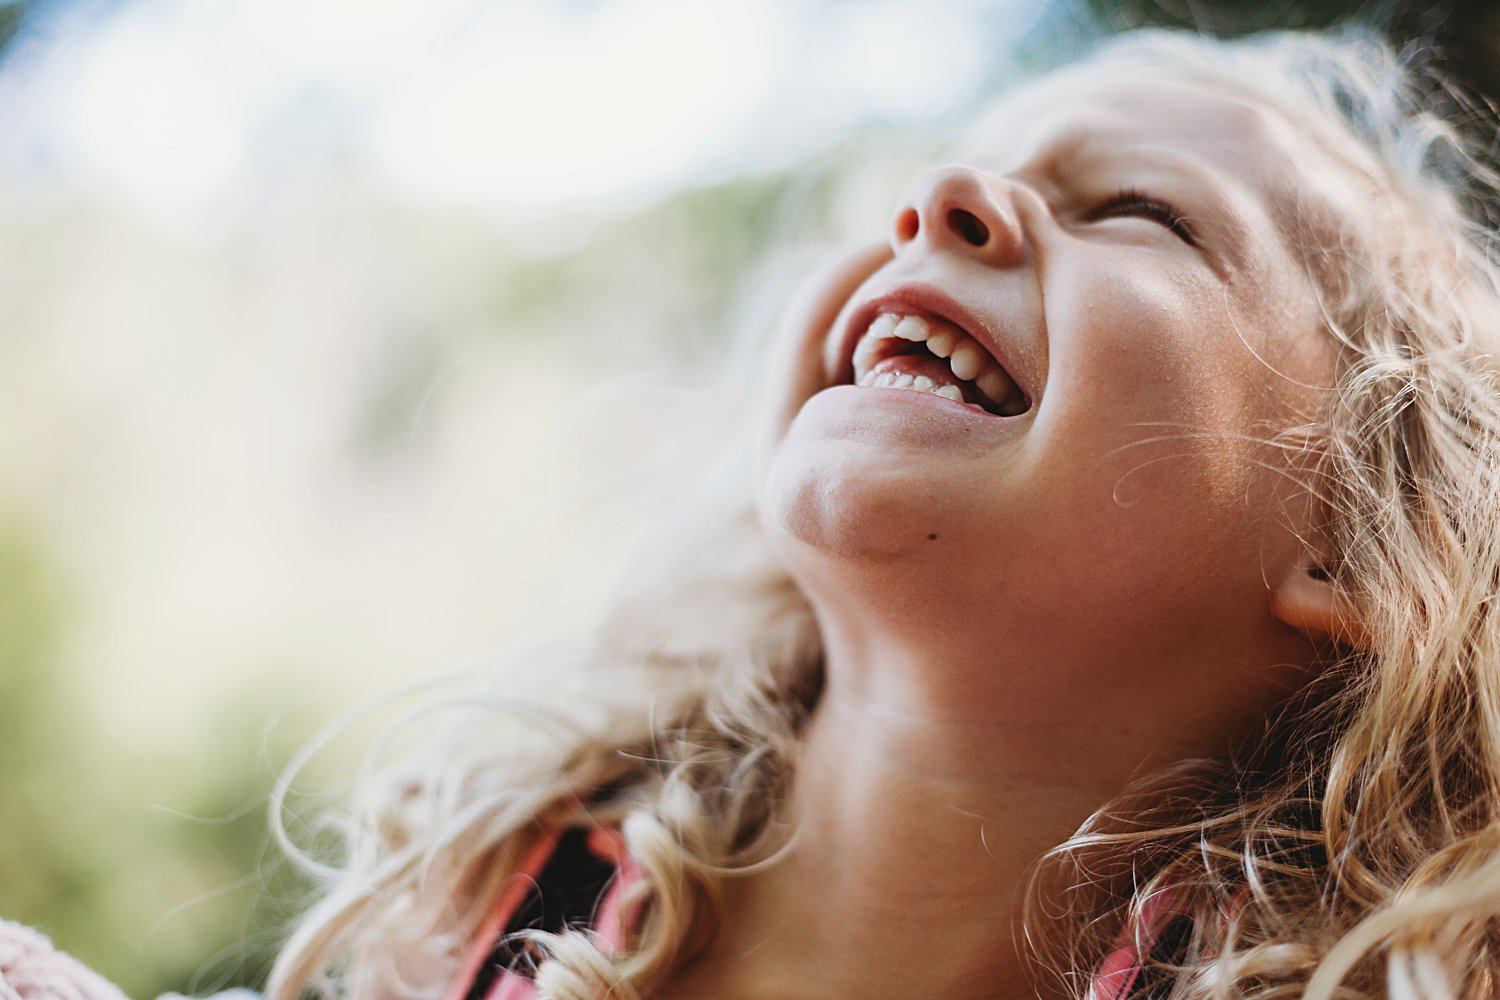 A young girl laughing